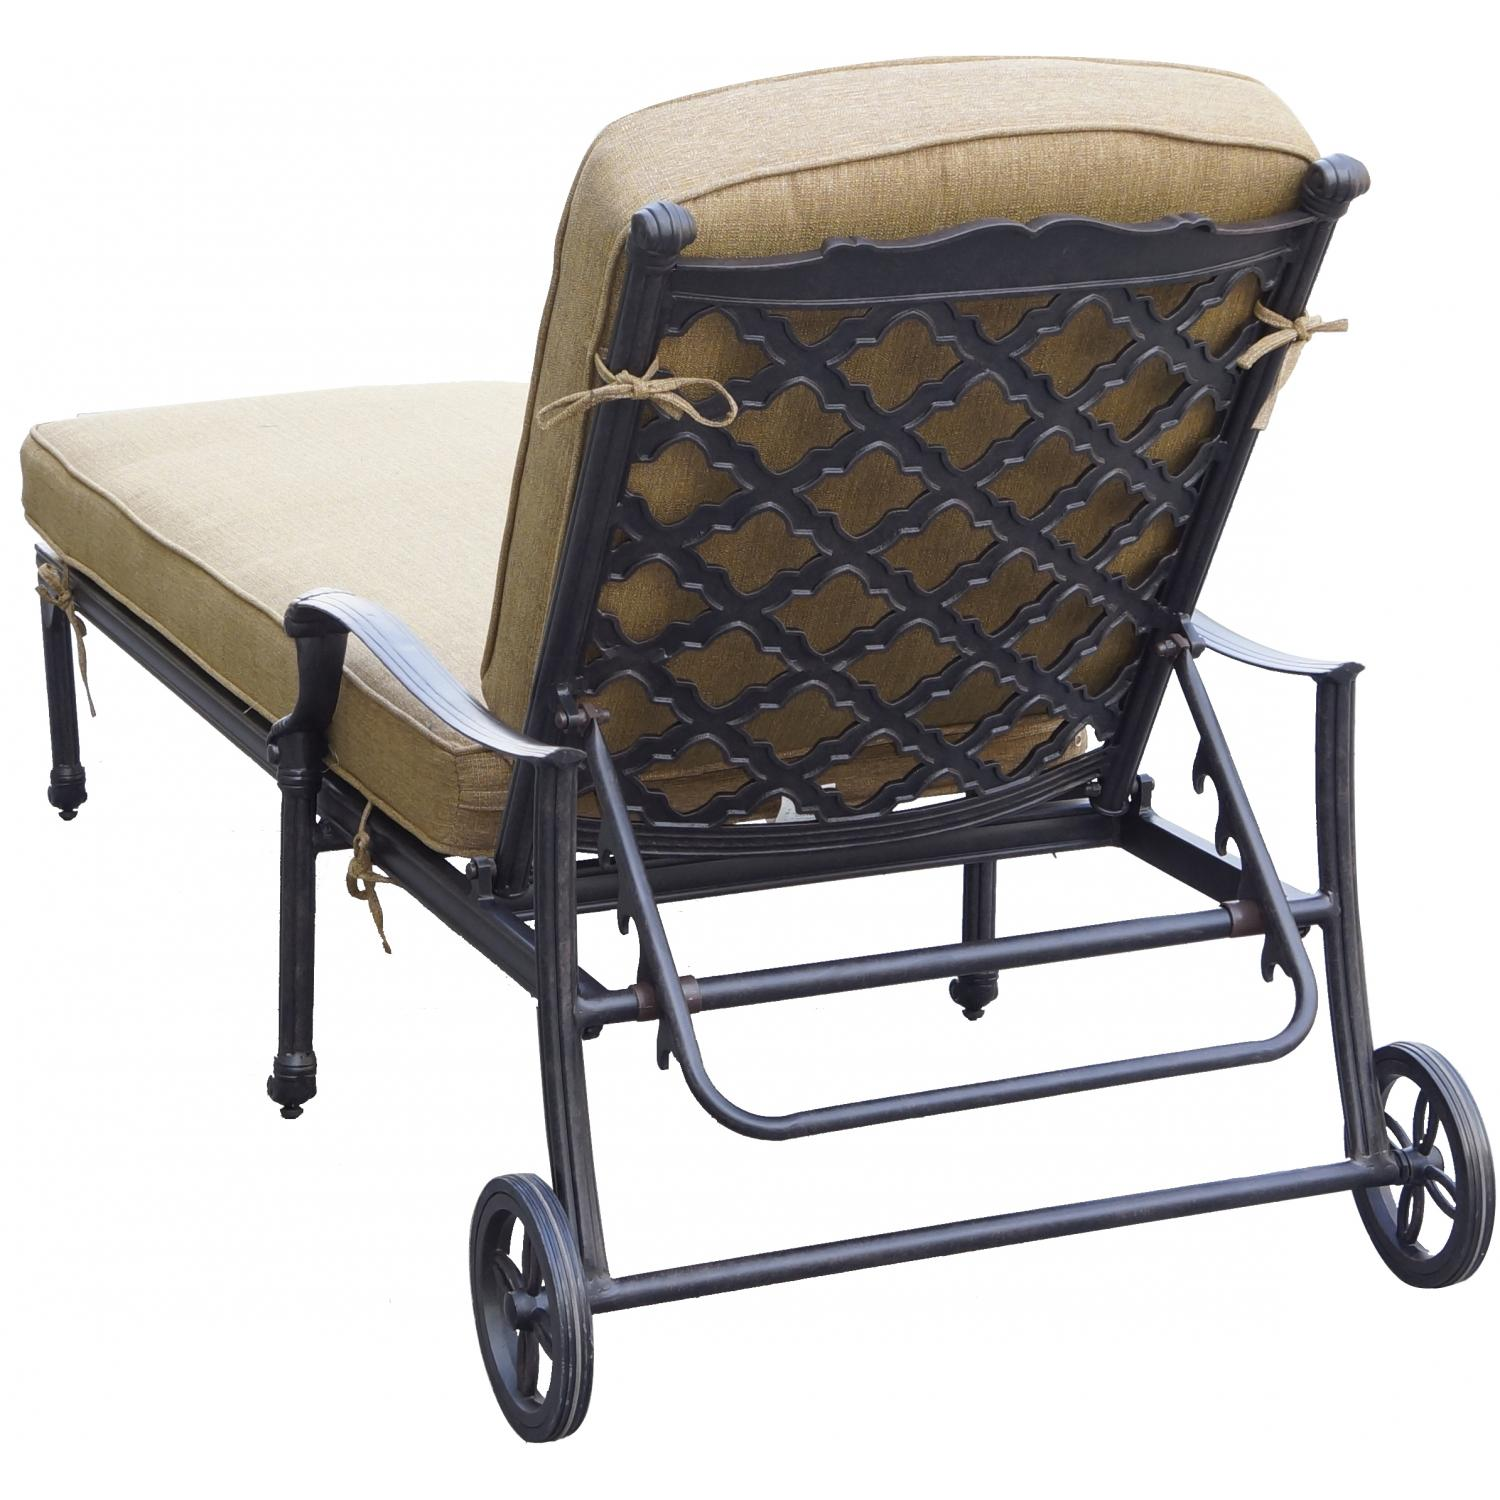 Picture of Darlee Camino Real Cast Aluminum Patio Chaise Lounge - Antique Bronze